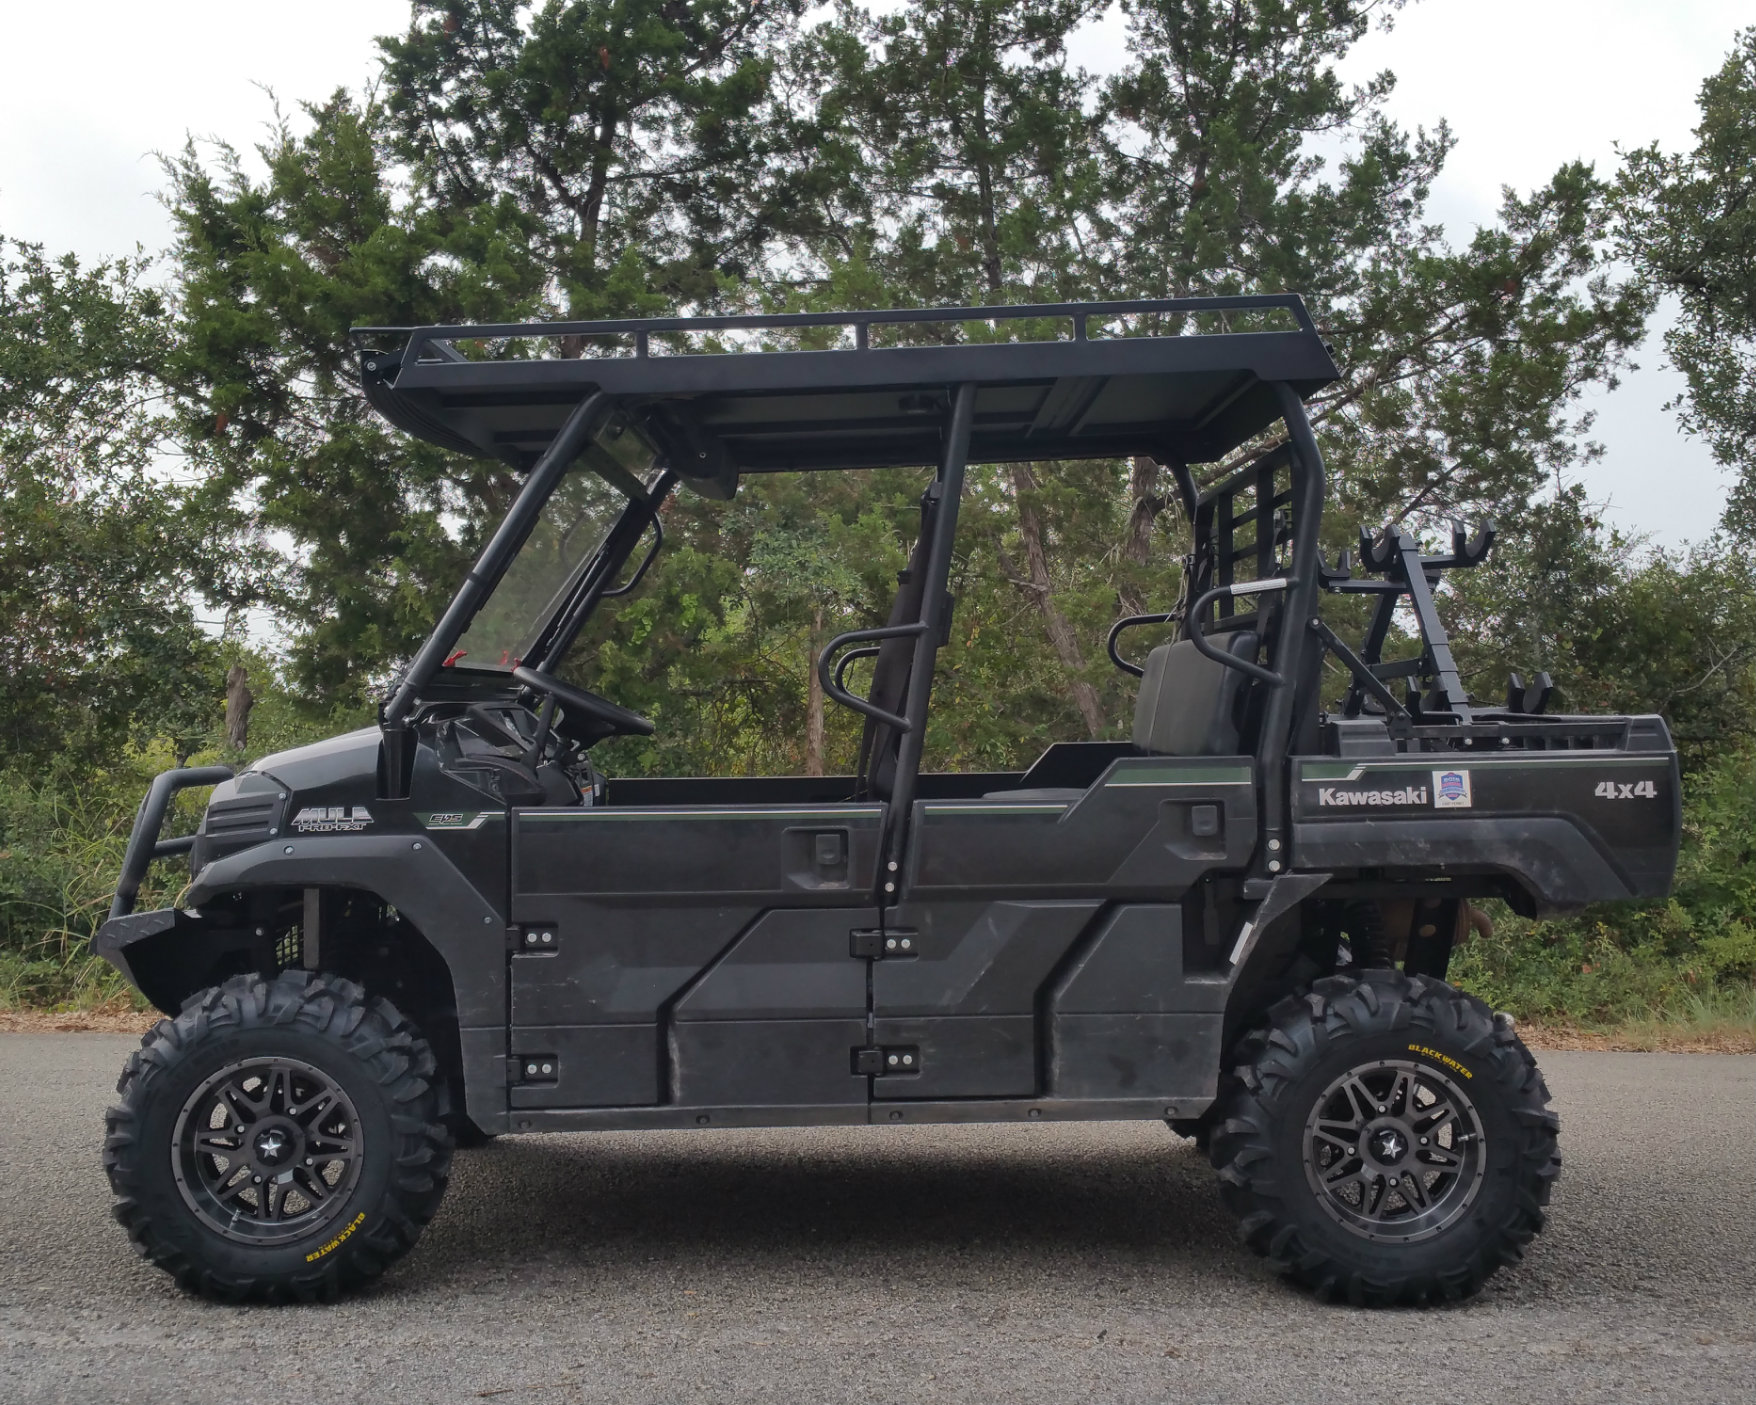 kawasaki-mule-pro-metal-roof-with-windshield-compatible.jpg